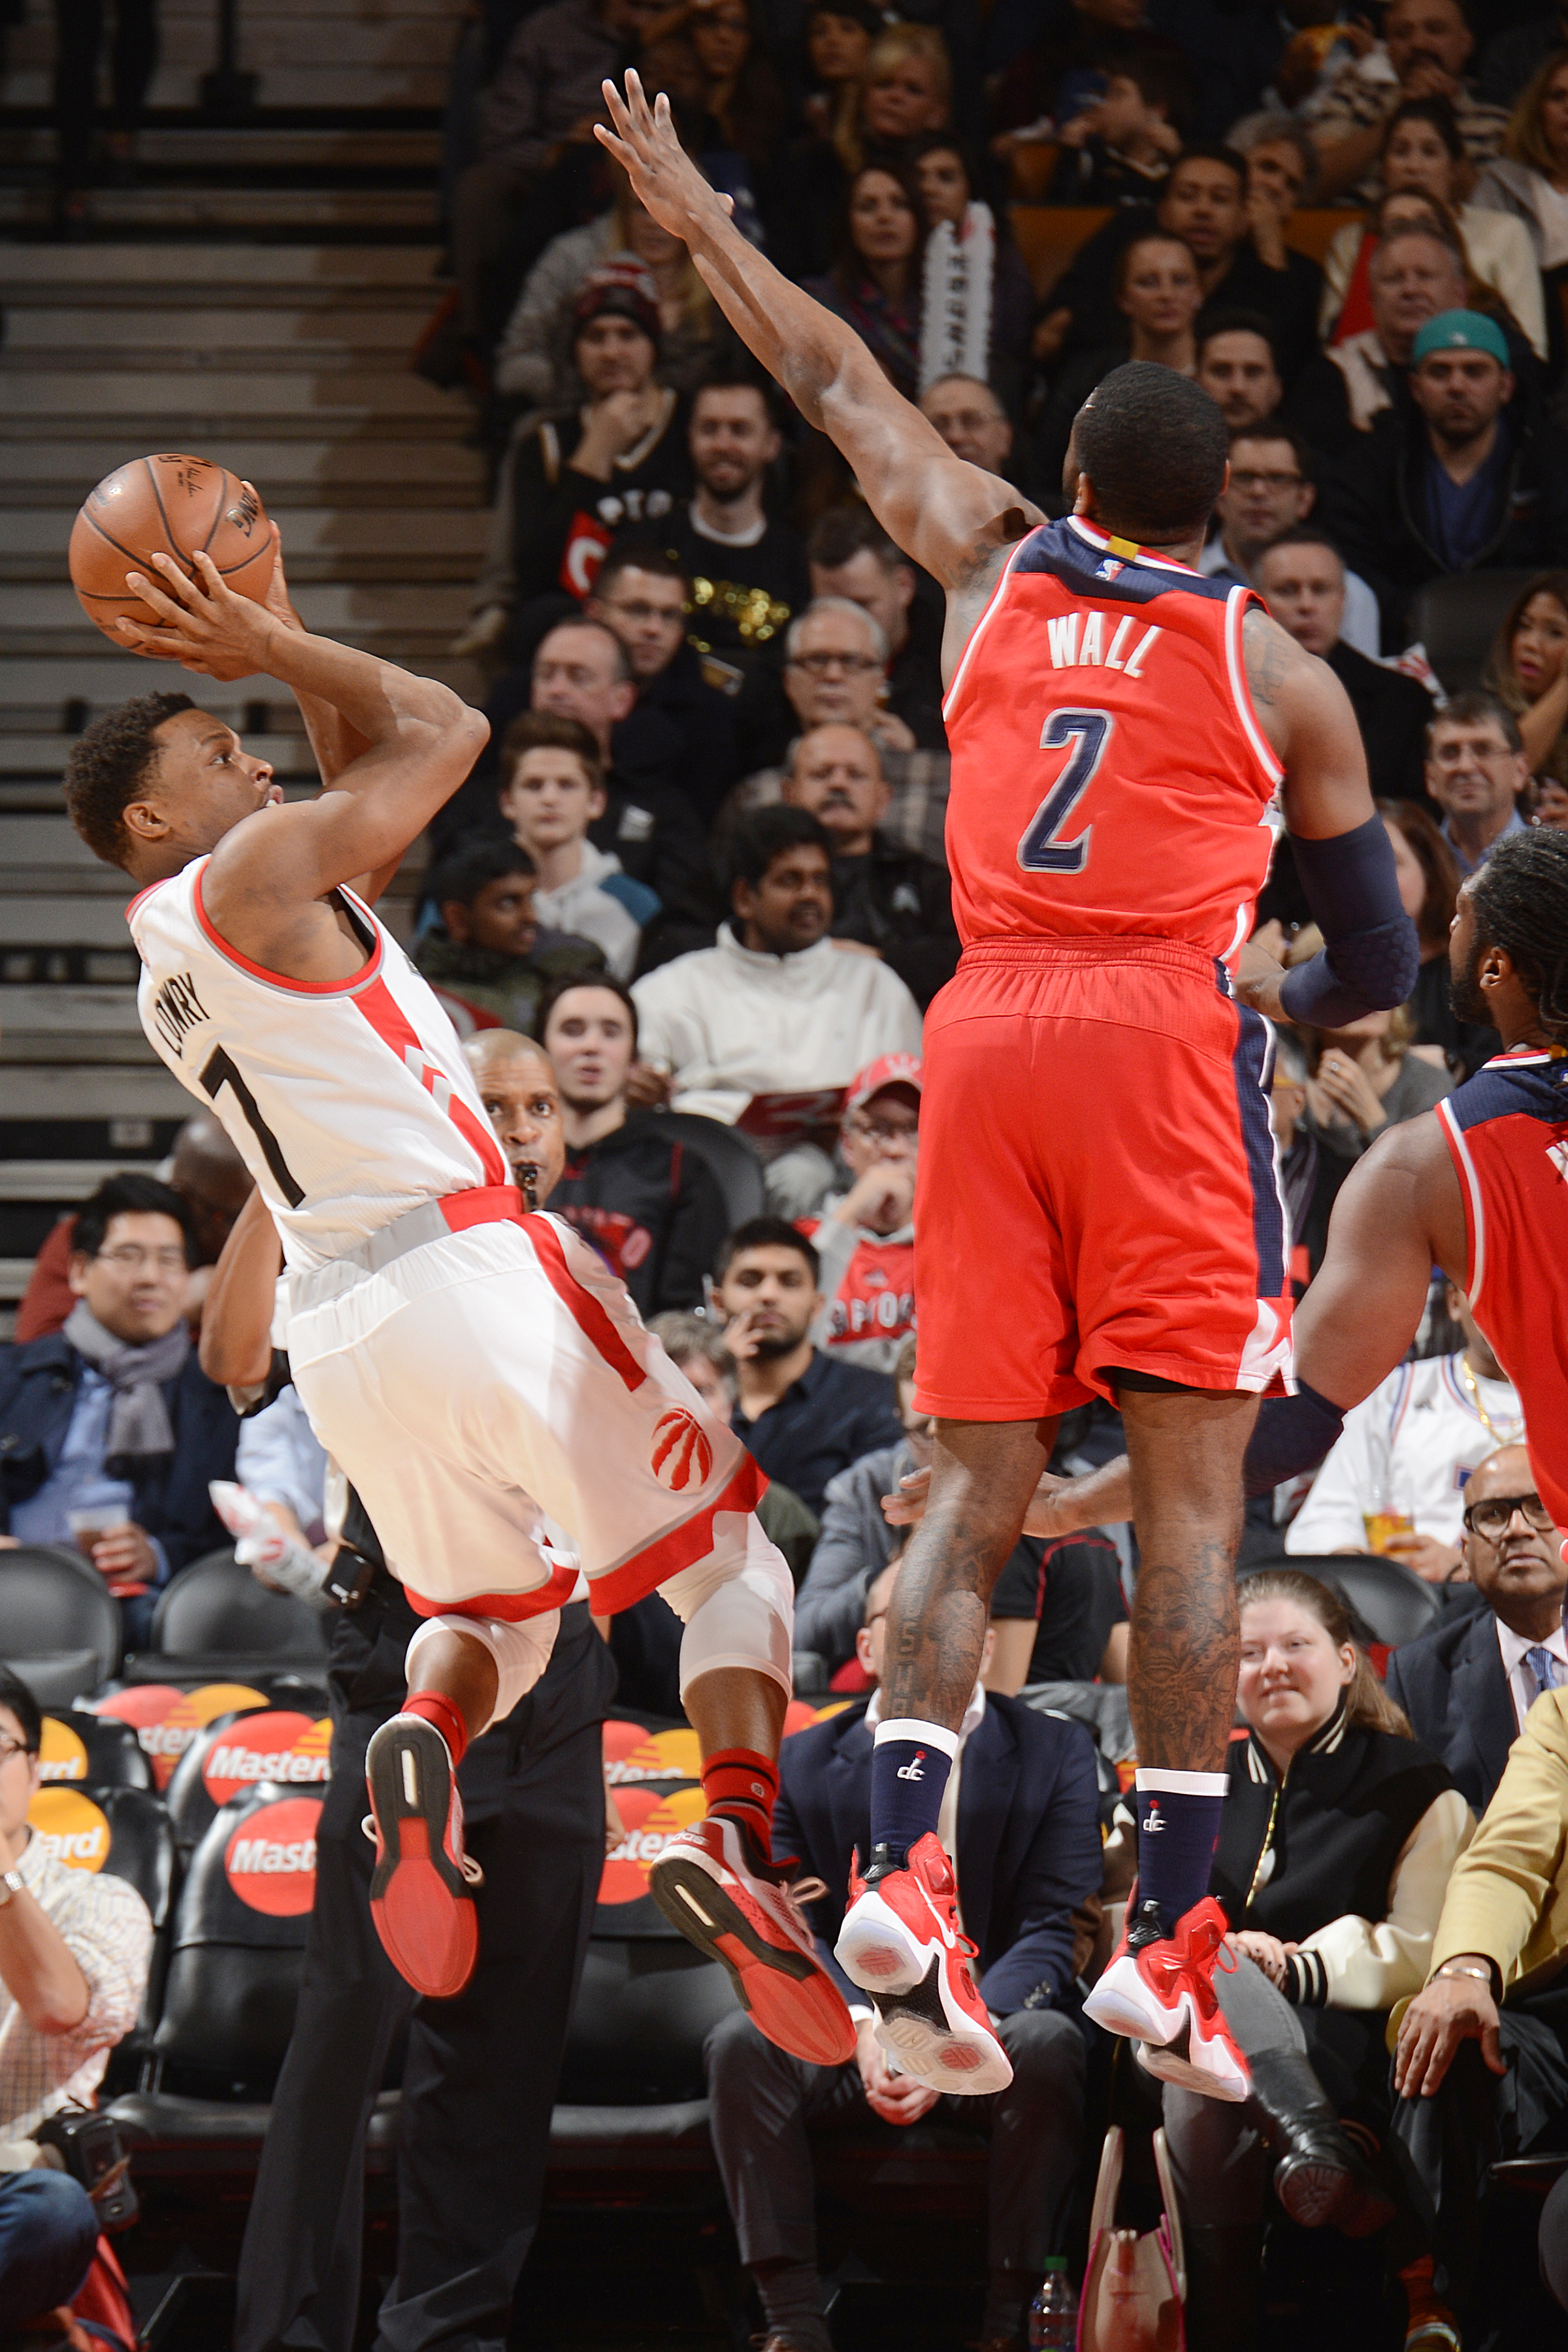 TORONTO, CANADA - JANUARY 26:  Kyle Lowry #7 of the Toronto Raptors shoots the ball against John Wall #2 of the Washington Wizards on January 26, 2016 at the Air Canada Centre in Toronto, Ontario, Canada.  (Photo by Ron Turenne/NBAE via Getty Images)